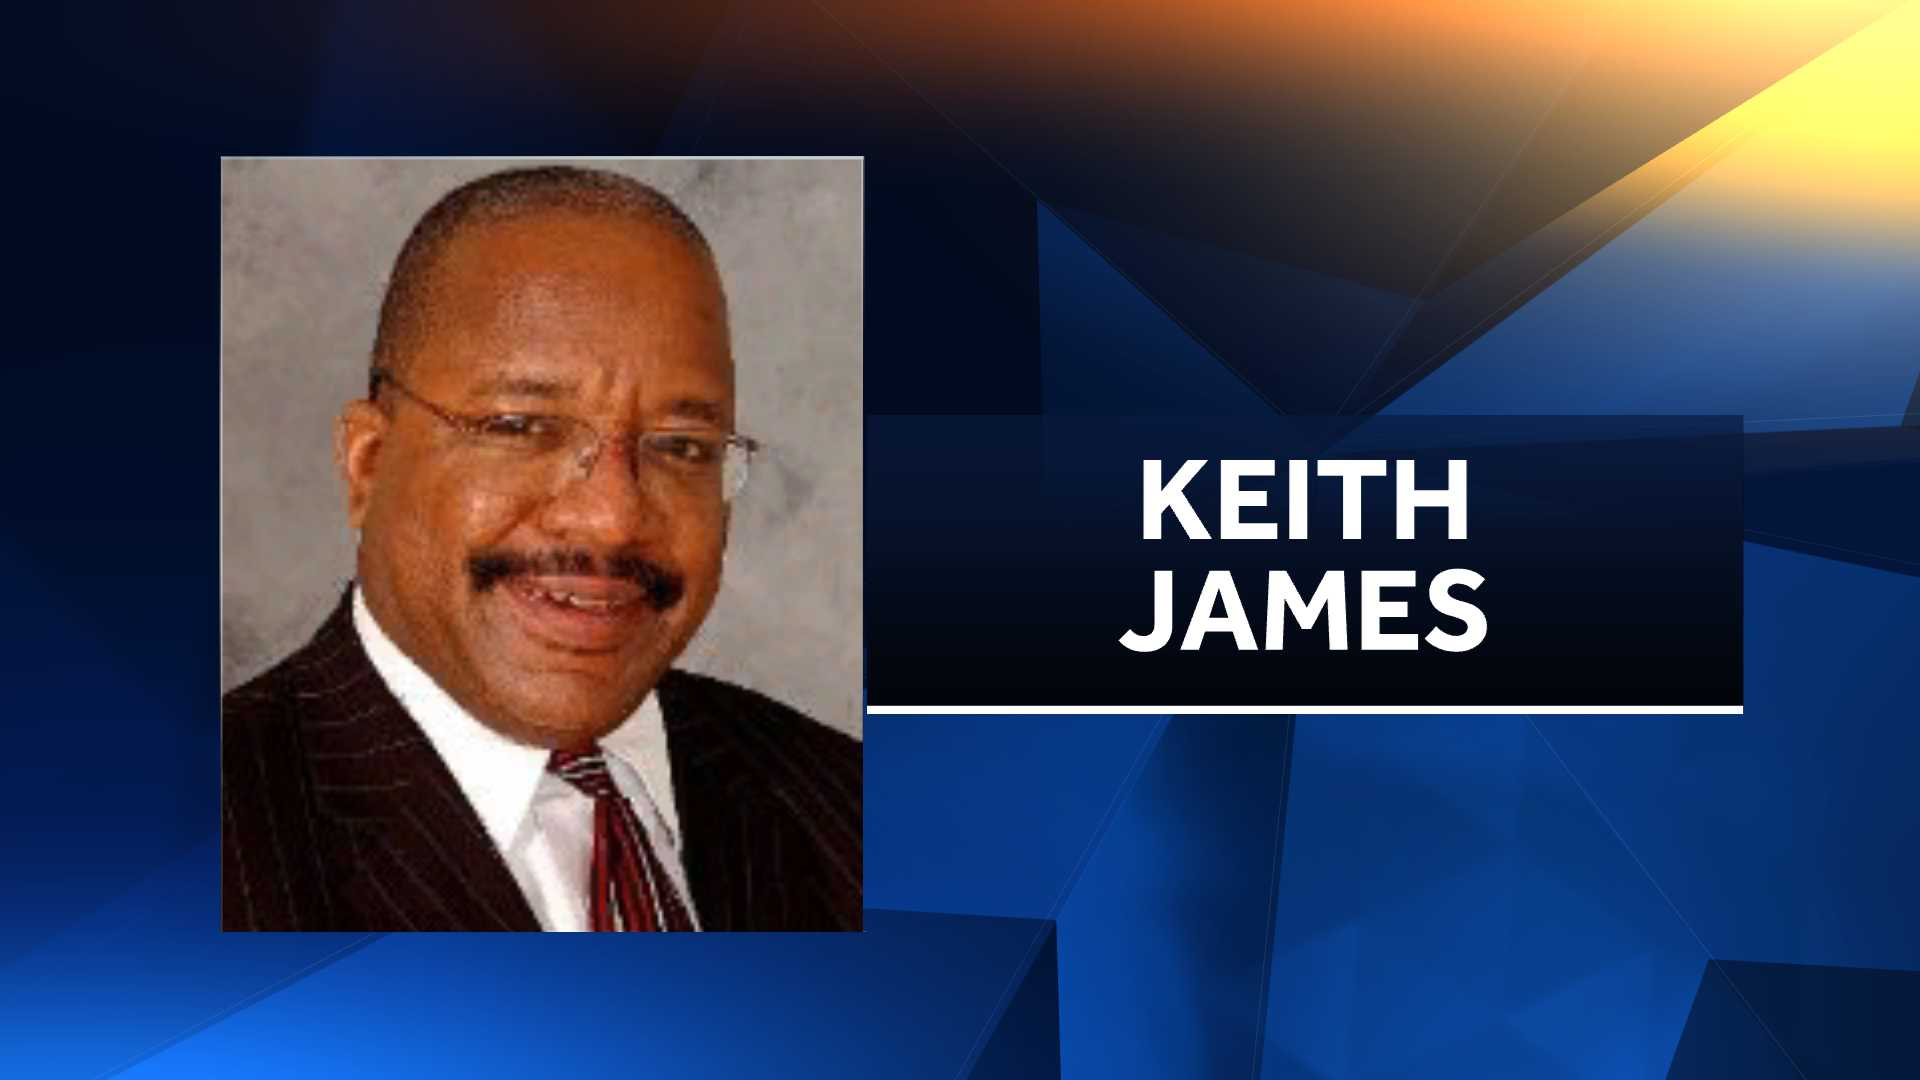 Keith James declared winner in West Palm Beach mayoral race